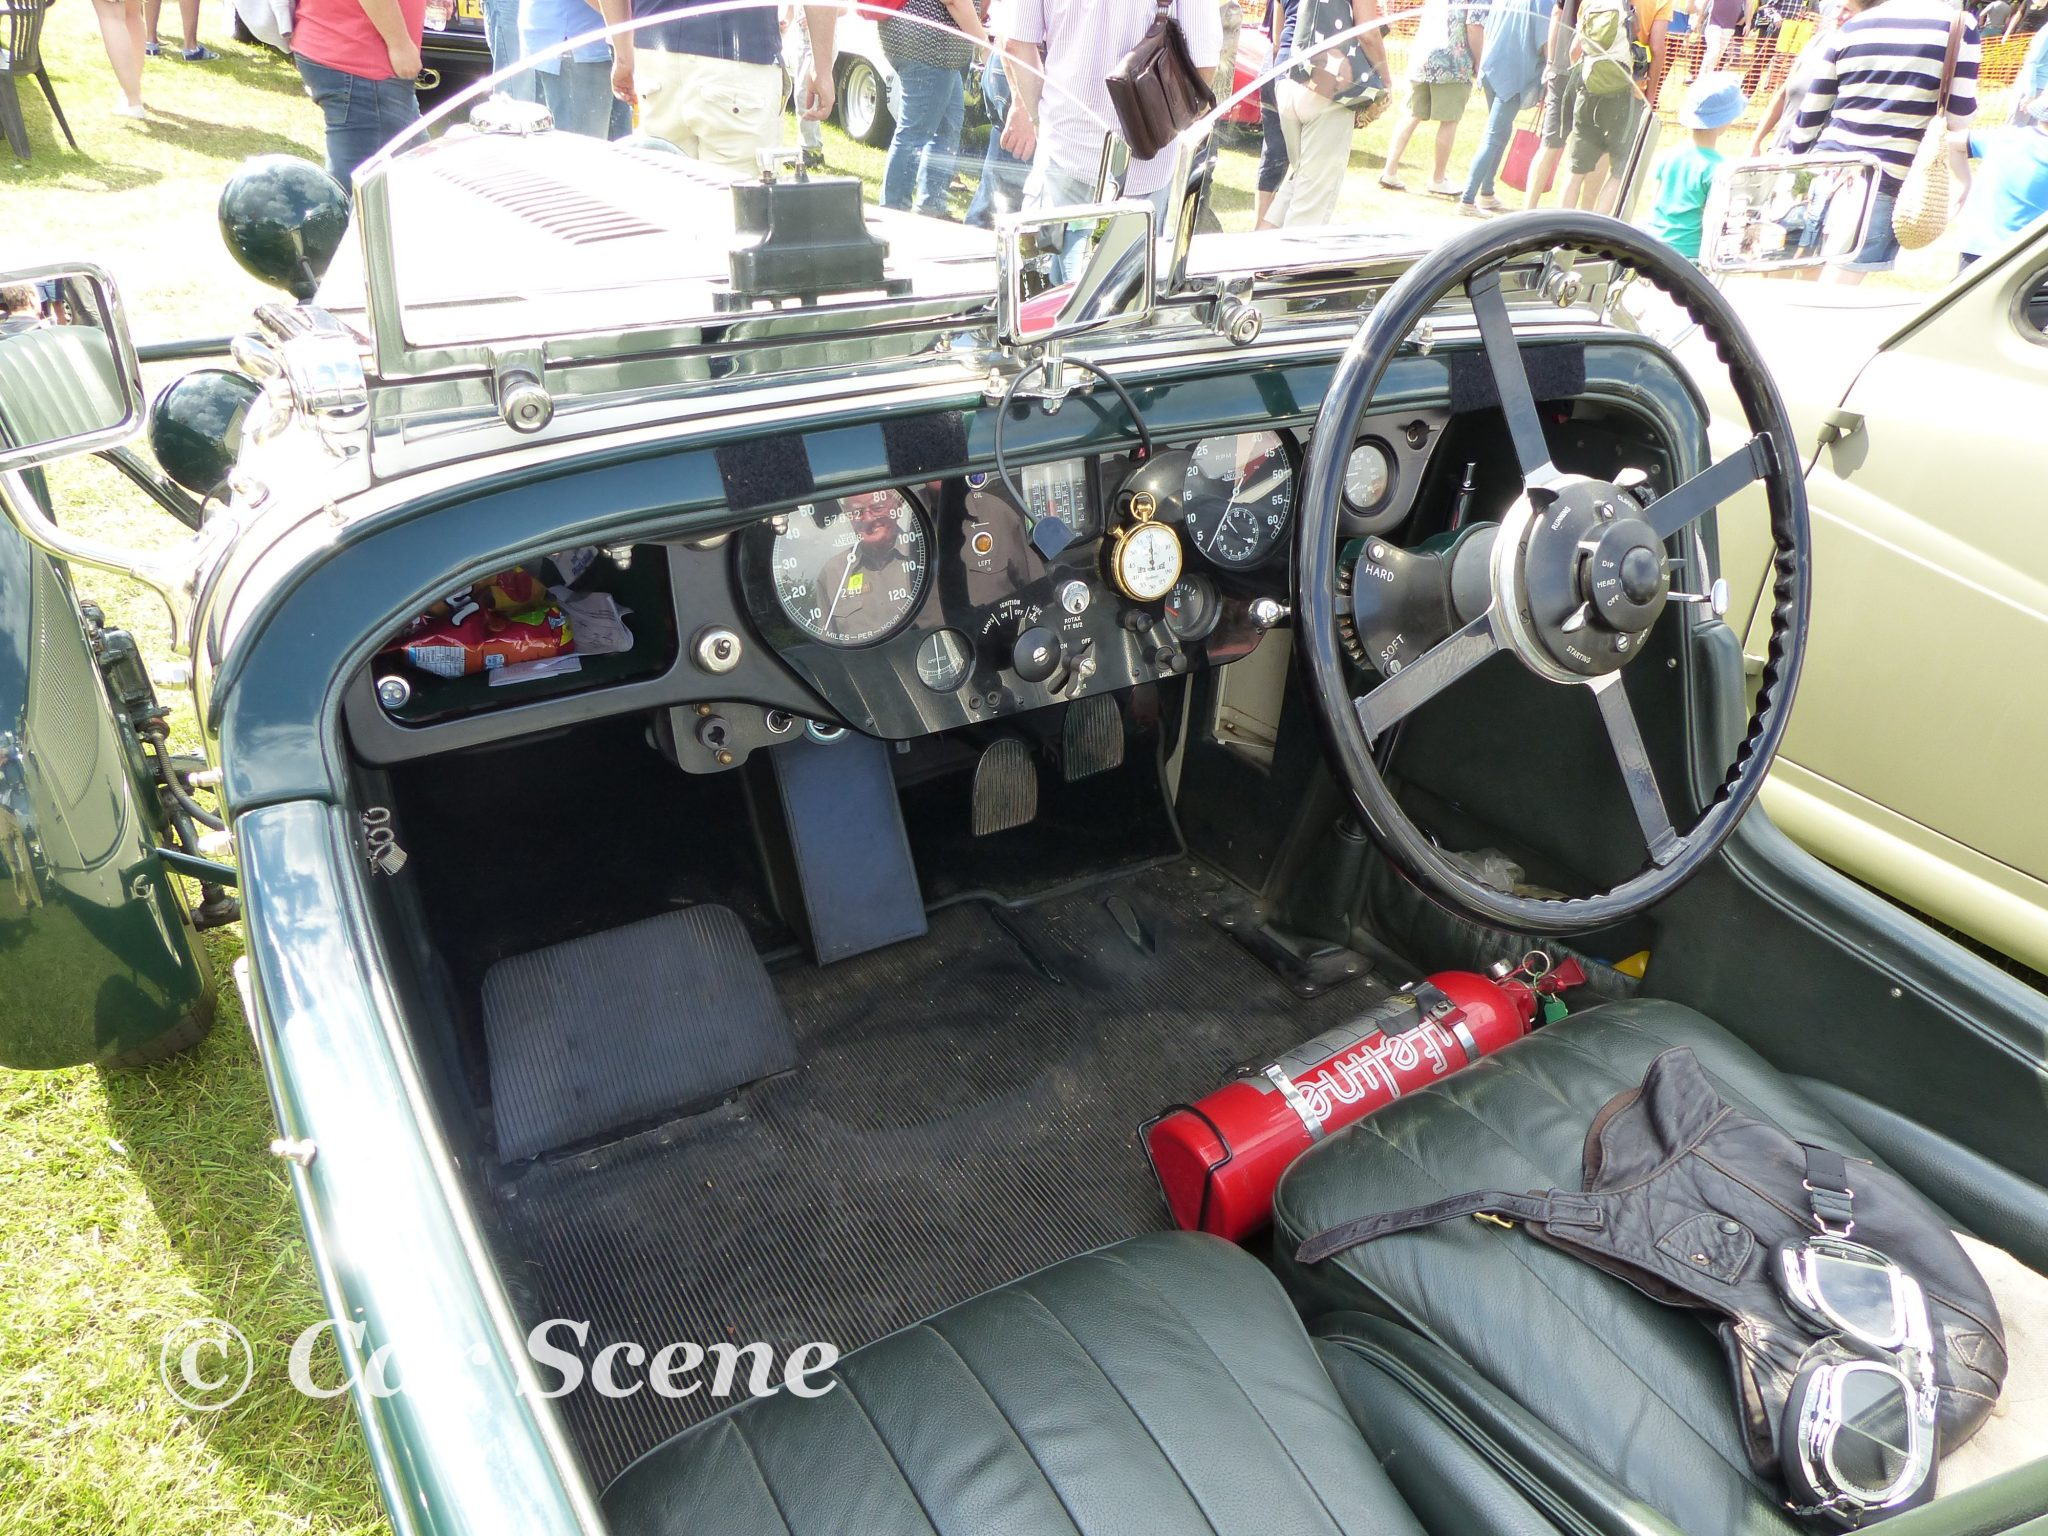 1937 Talbot in the style of a 1934 Alpine team model cockpit view